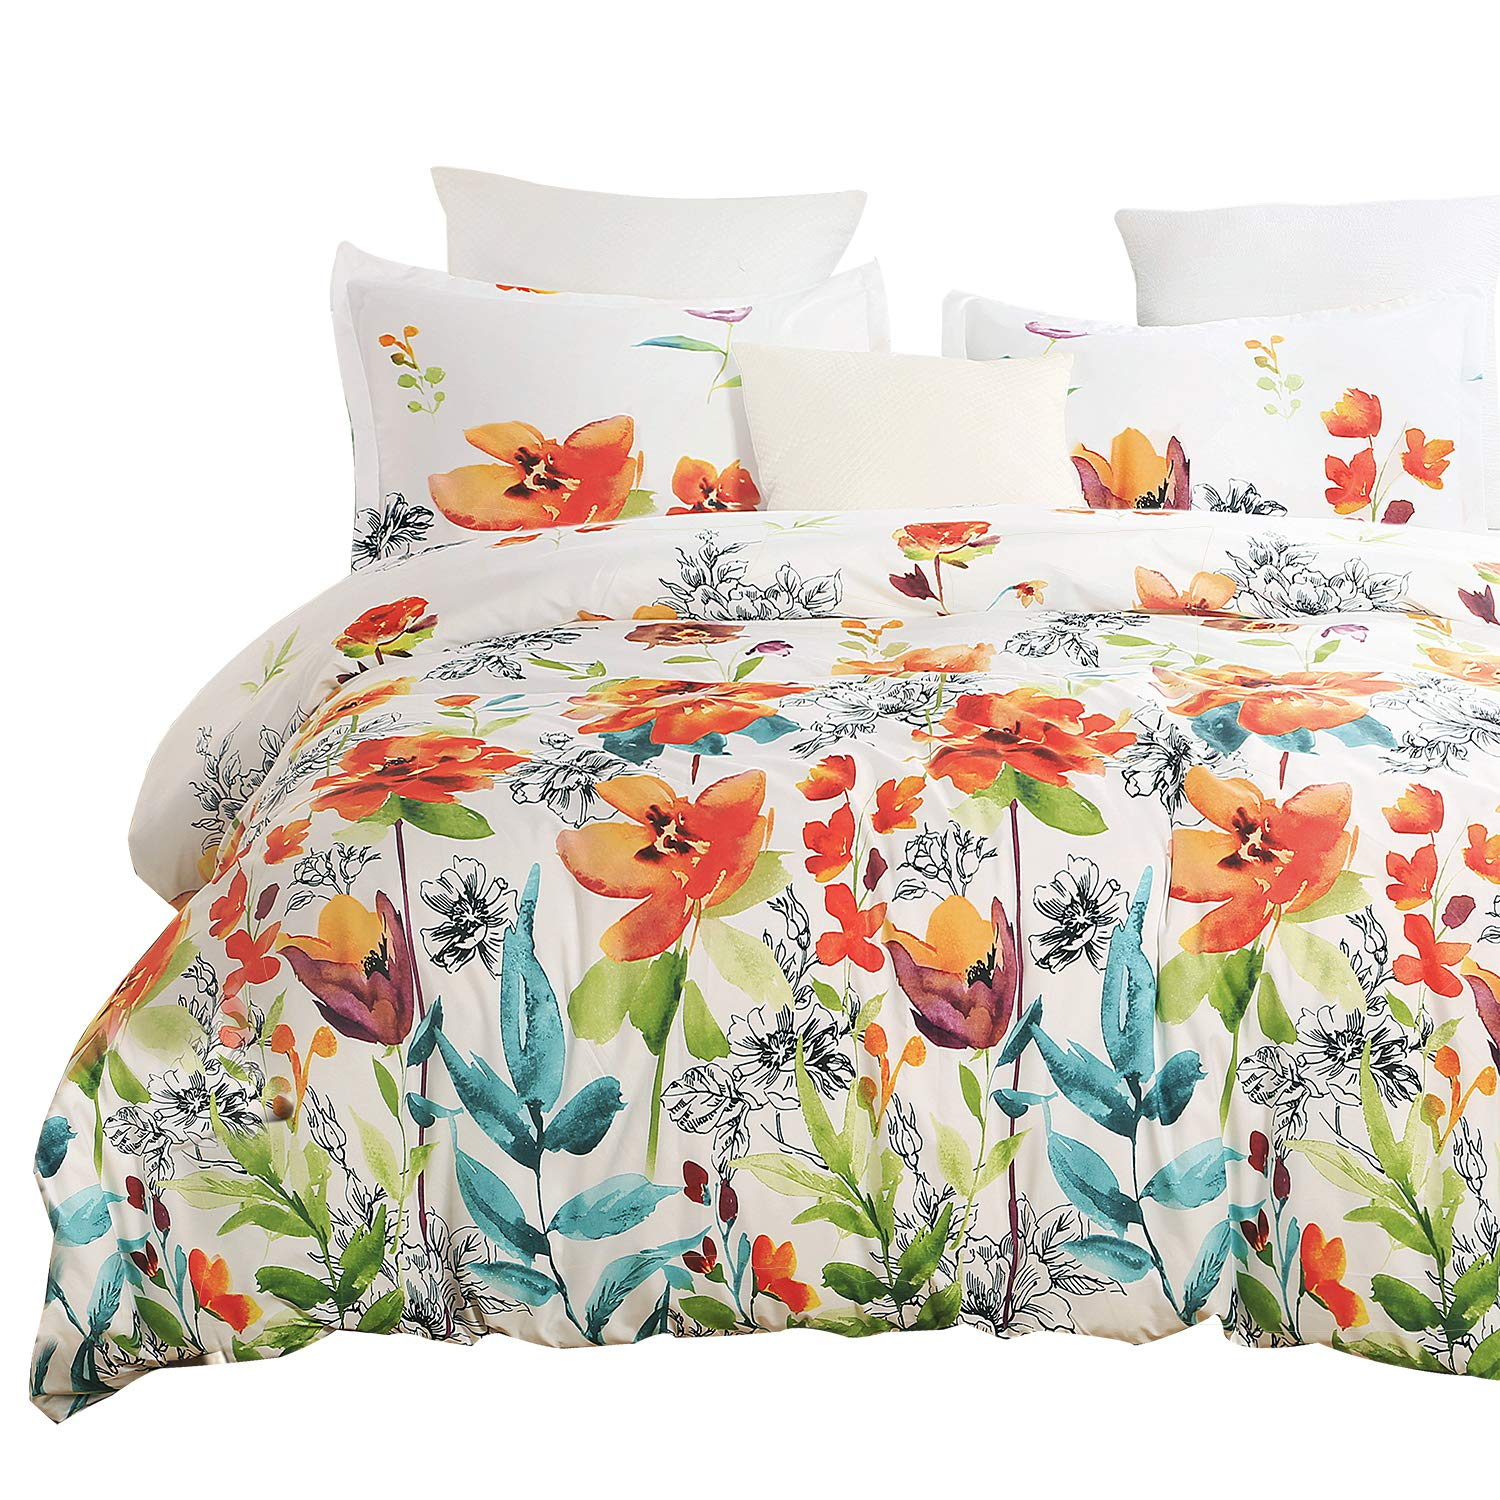 Vaulia Lightweight Microfiber Duvet Cover Set, Colorful Floral Print Pattern, White Multi-Color - Queen Size